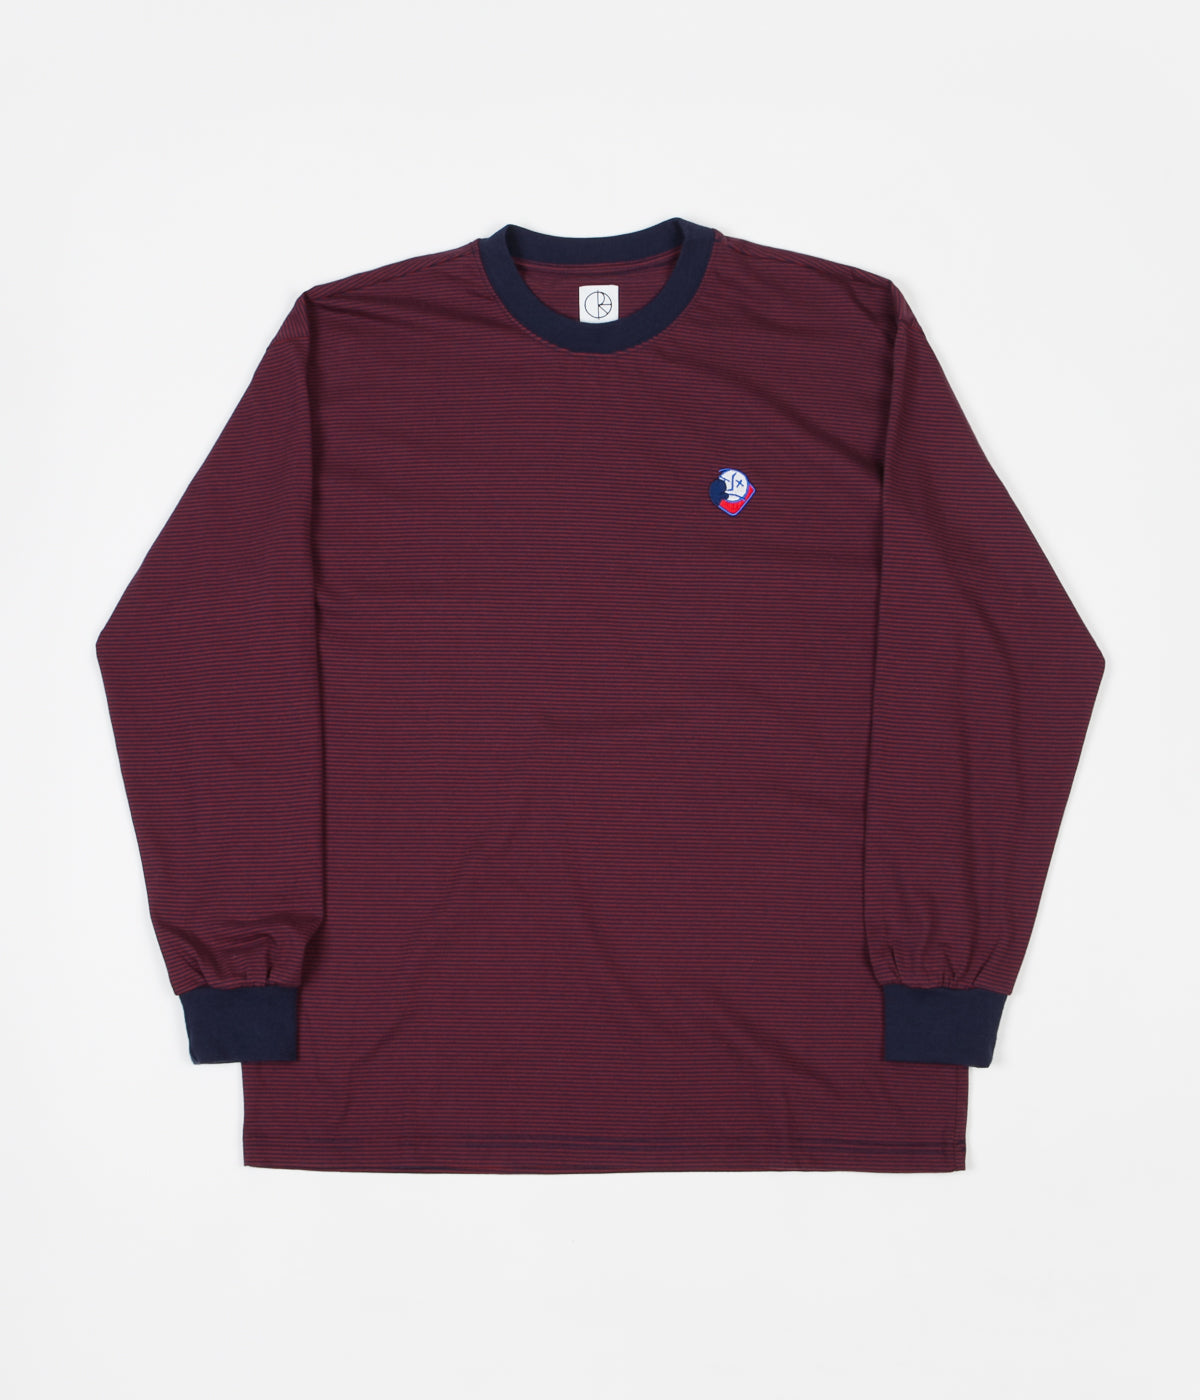 Polar Big Boy Microstripe Long Sleeve T-Shirt - Navy / Burgundy